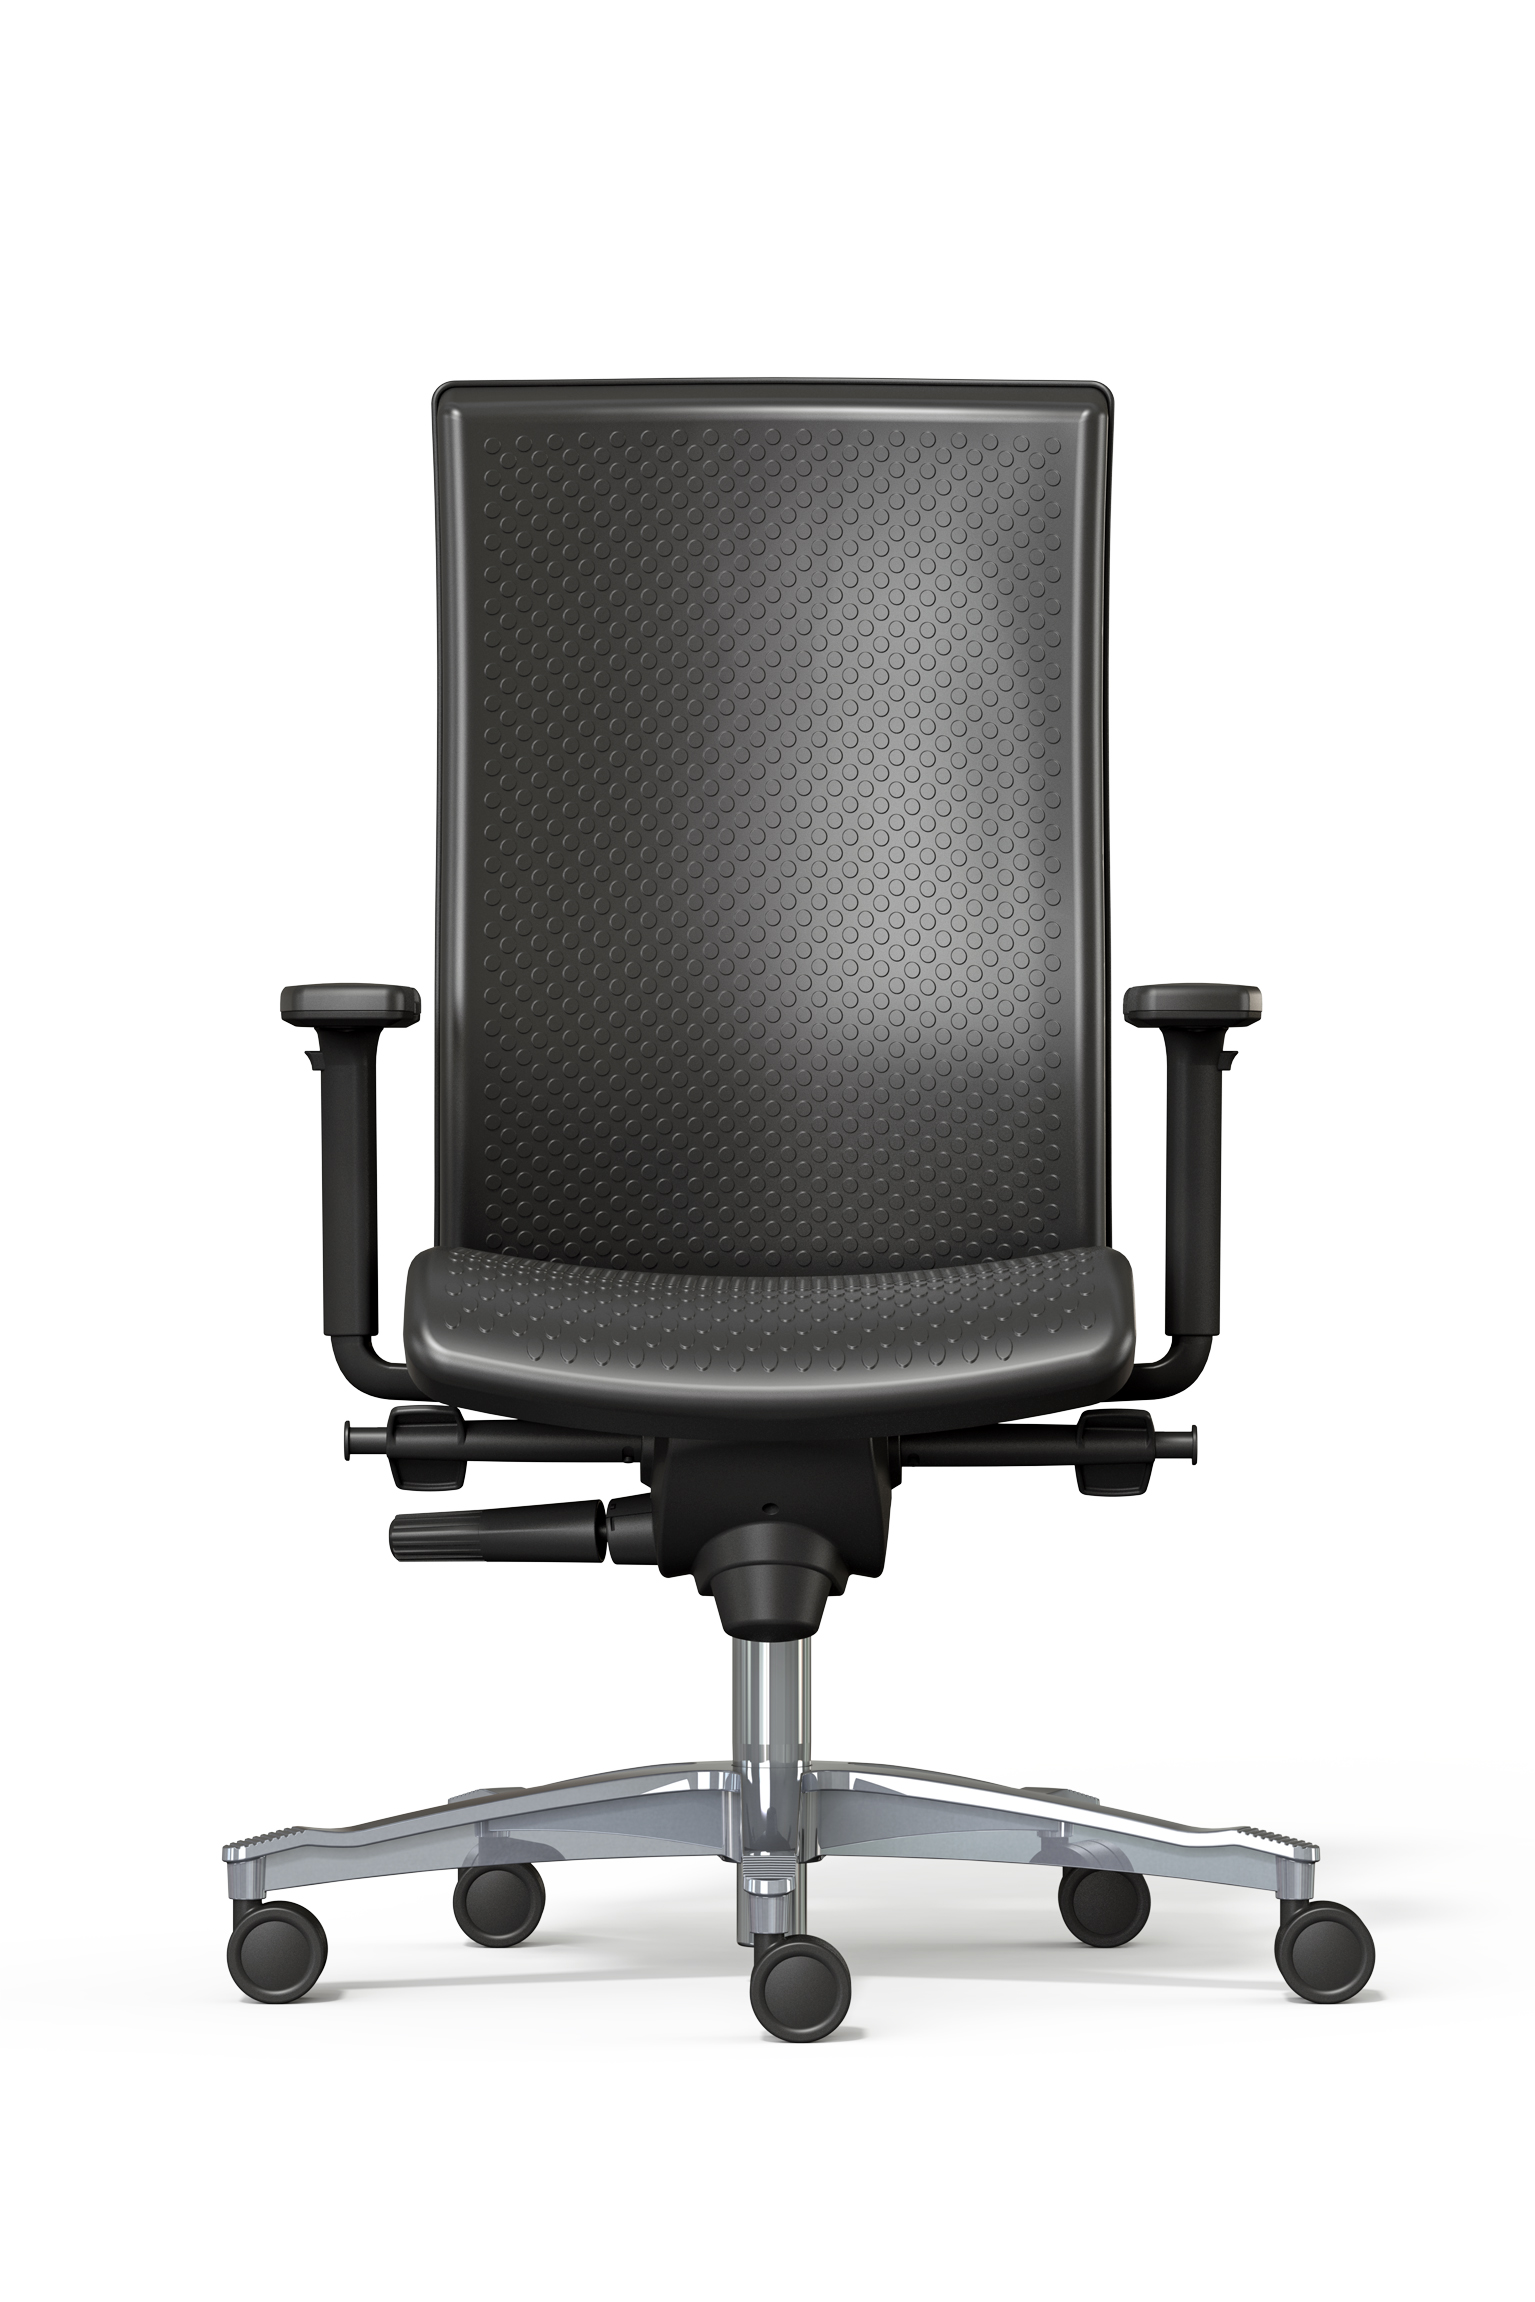 Dauphin Chairs Dauphin Unveils Round The Clock And Industrial Ergonomic Chairs